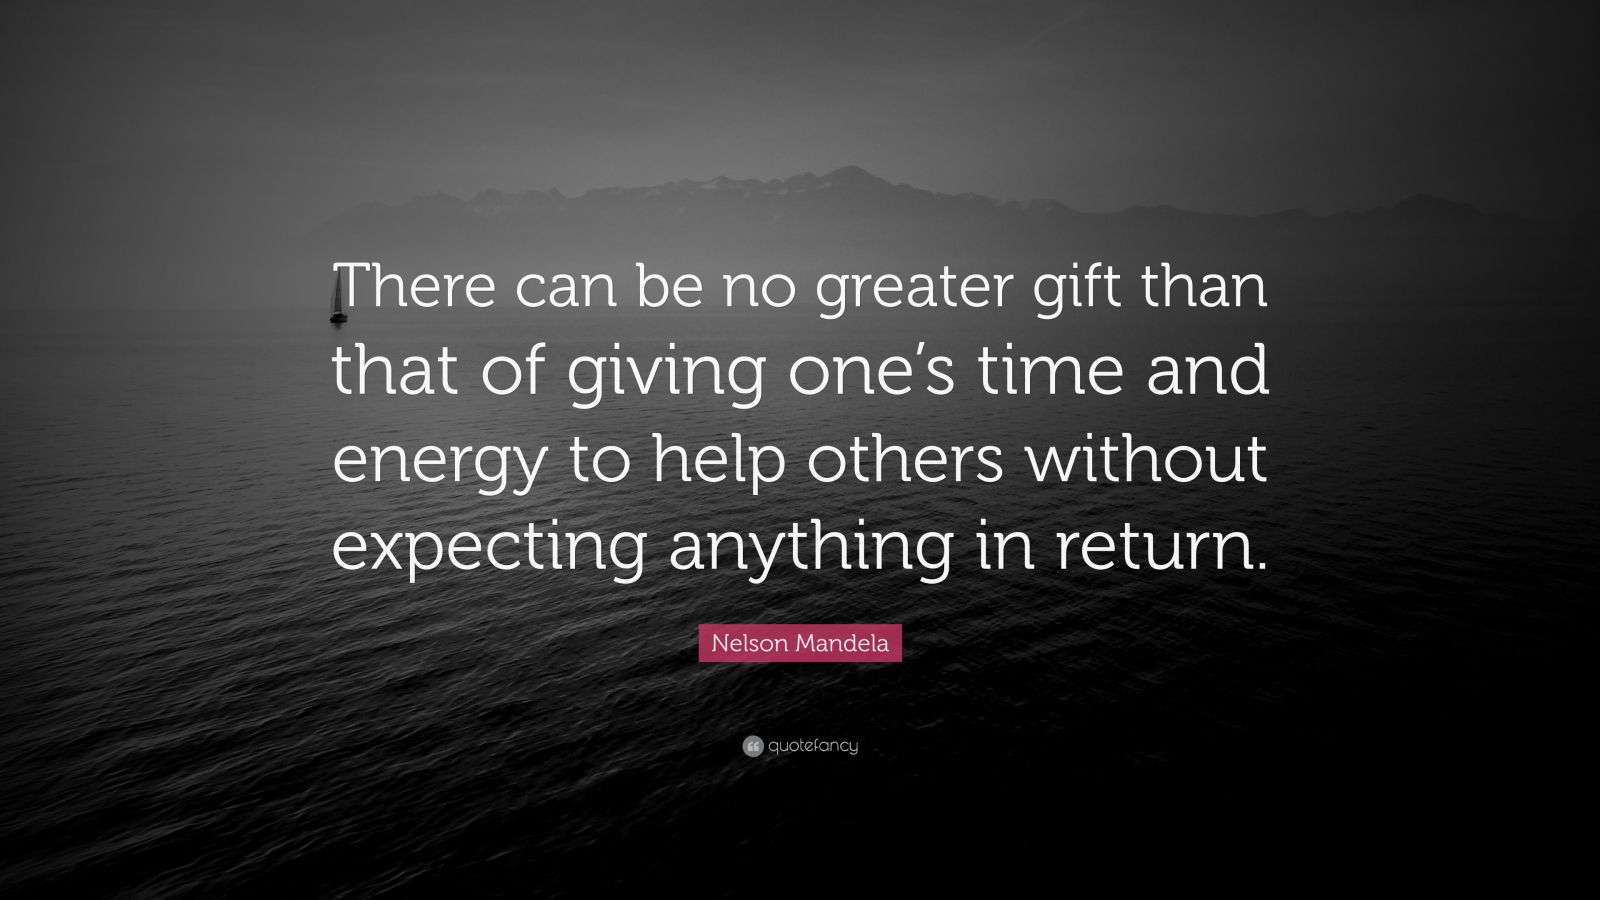 Life Is A Gift Quotes Wallpaper Nelson Mandela Quote There Can Be No Greater Gift Than